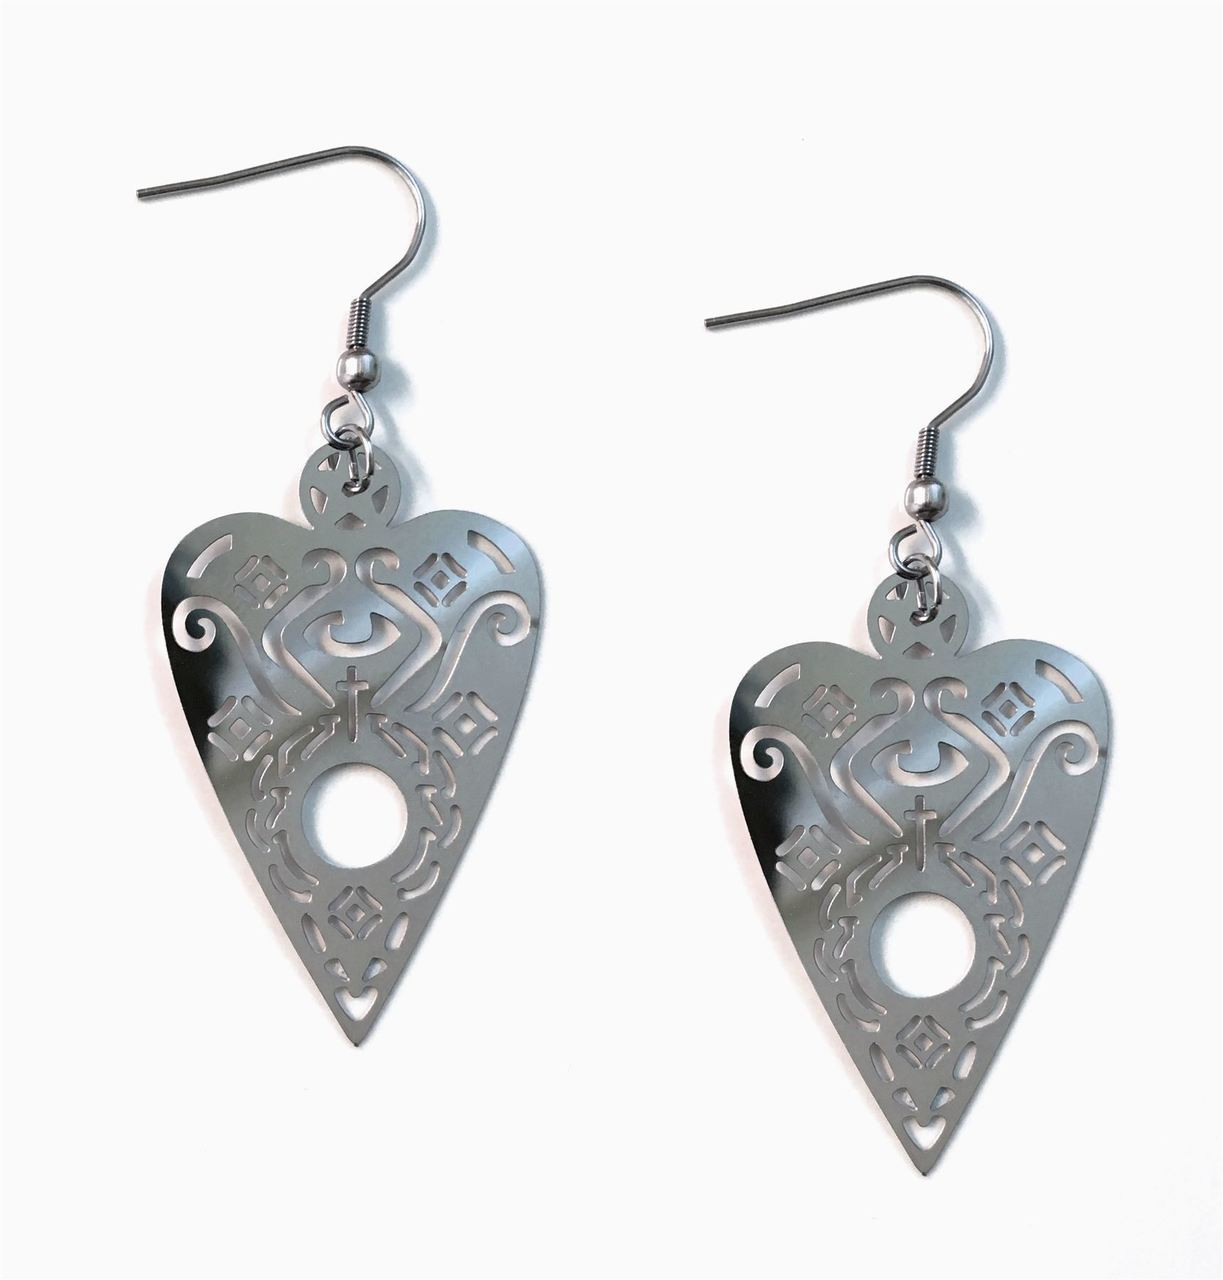 Over sized Stainless Steel OUIJA PLANCHETTE earrings